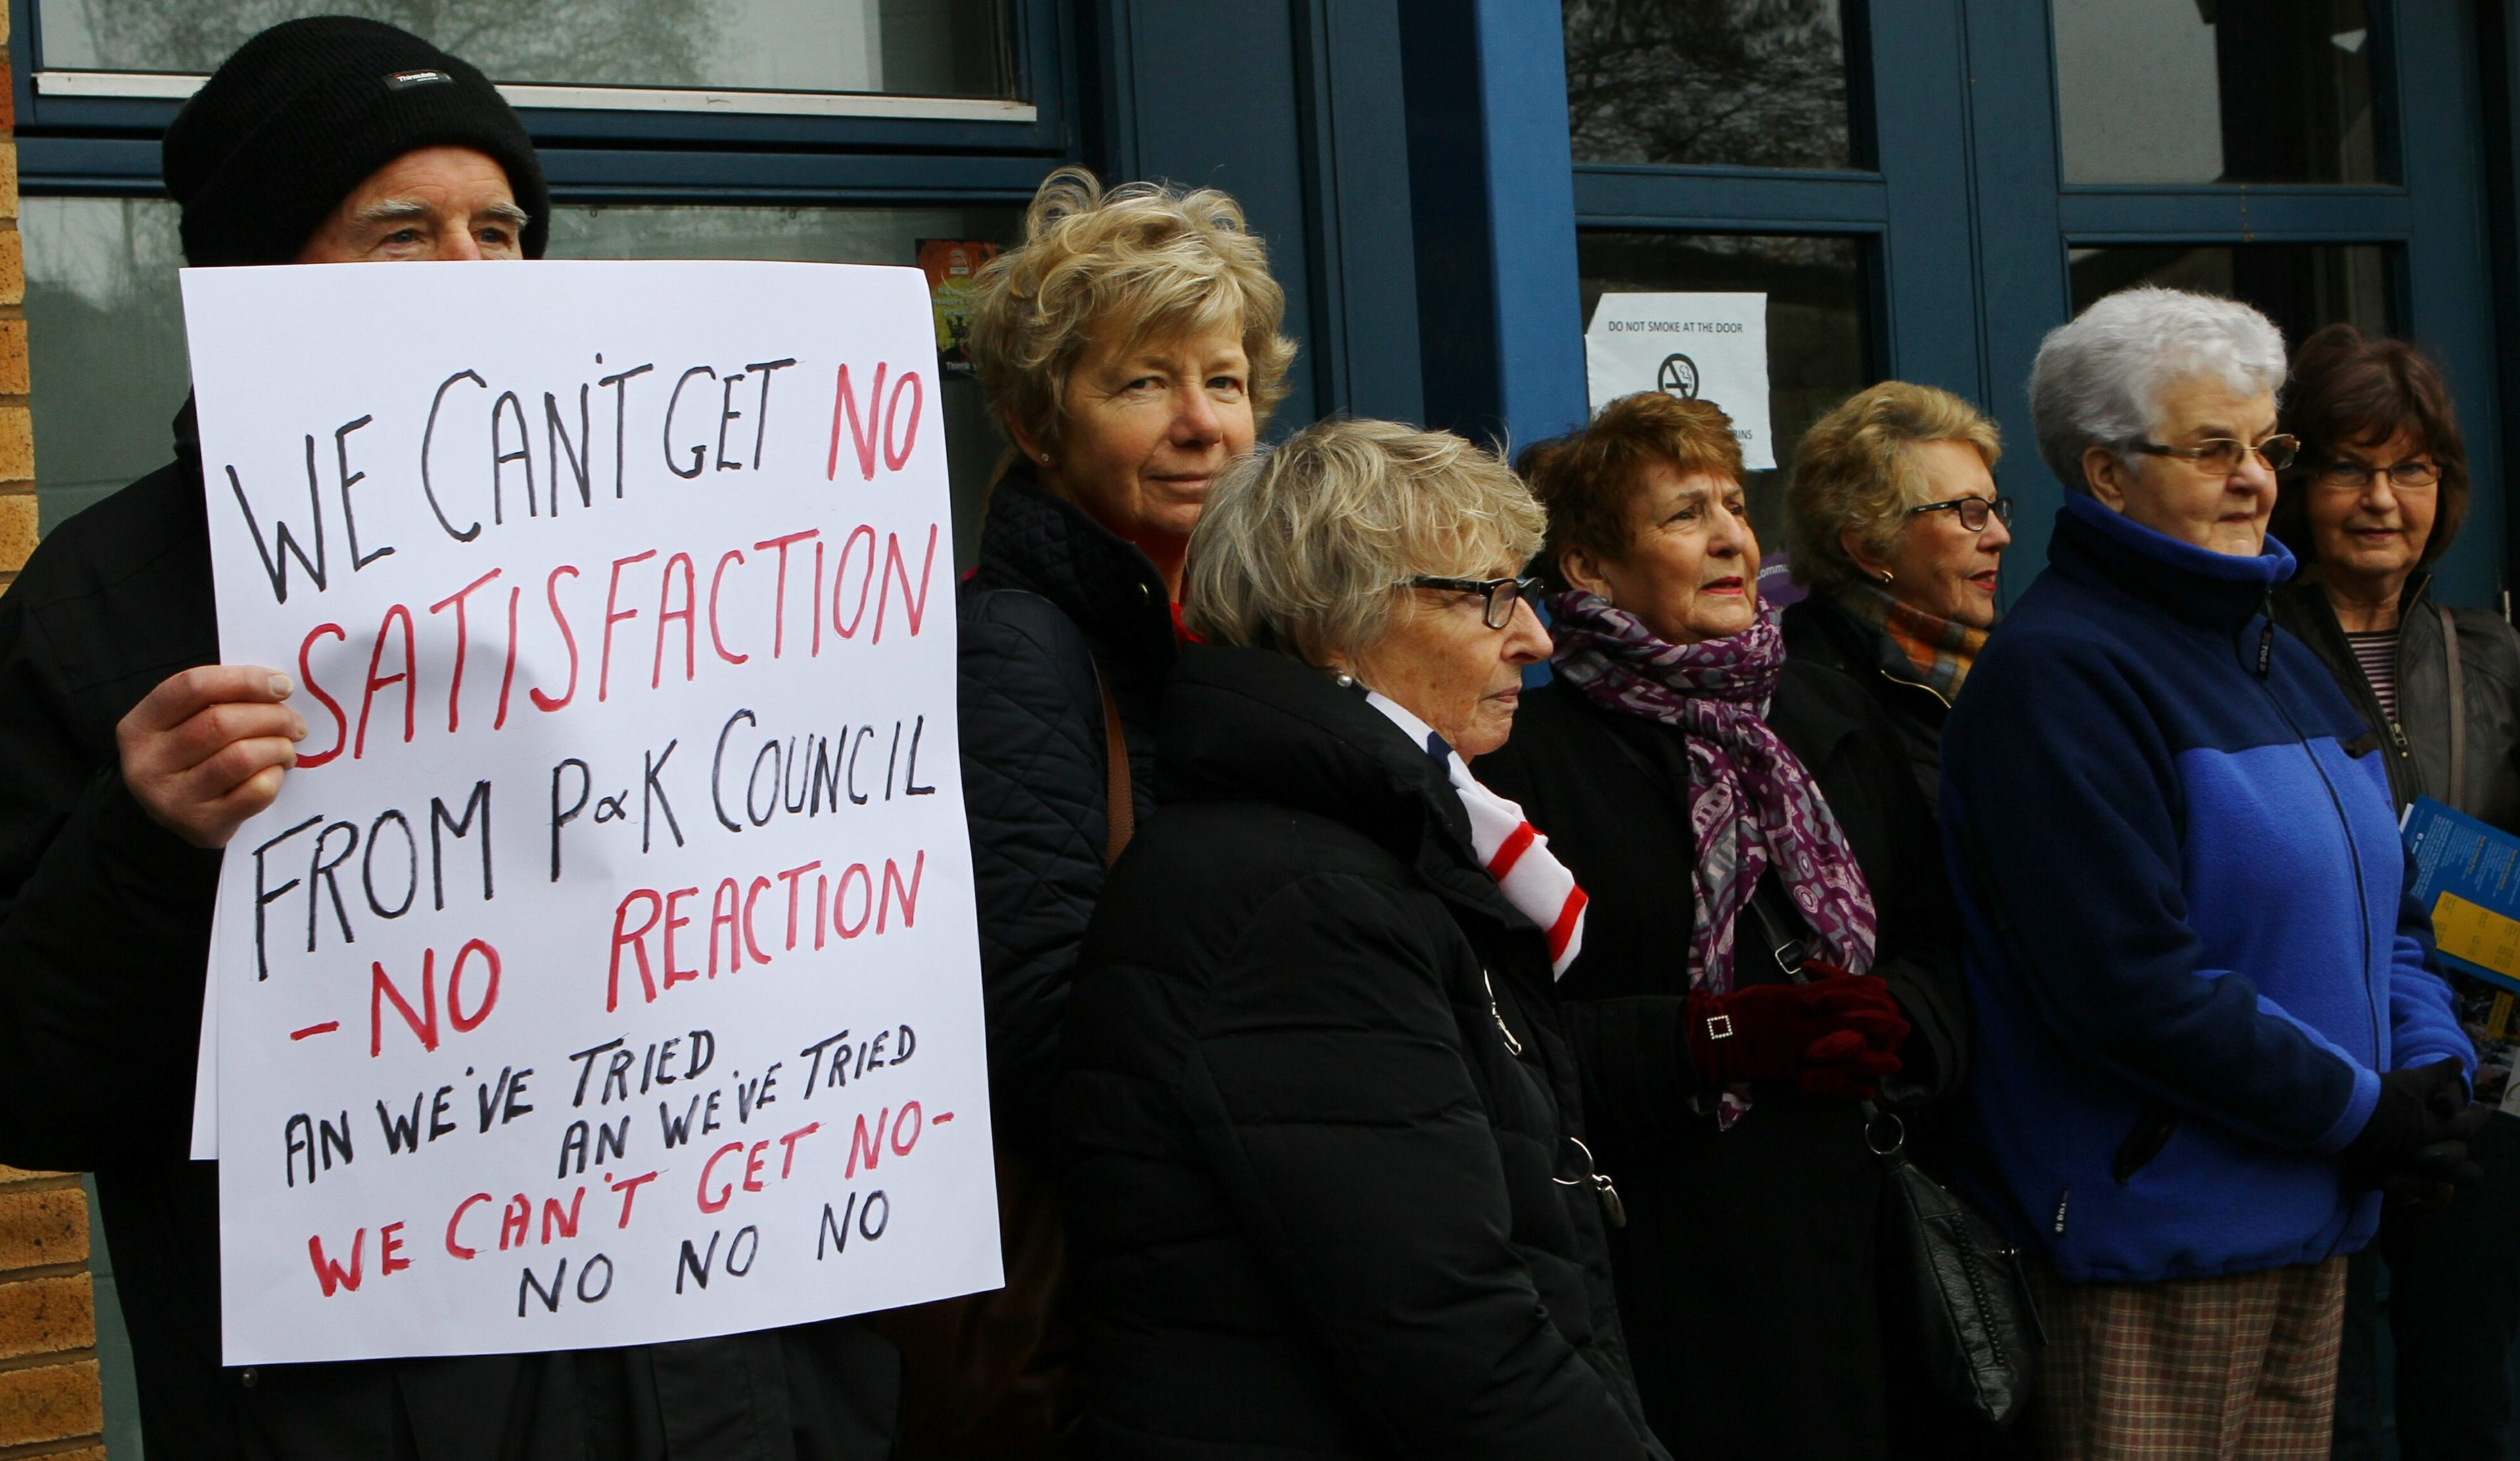 Protesters outside the Letham Centre